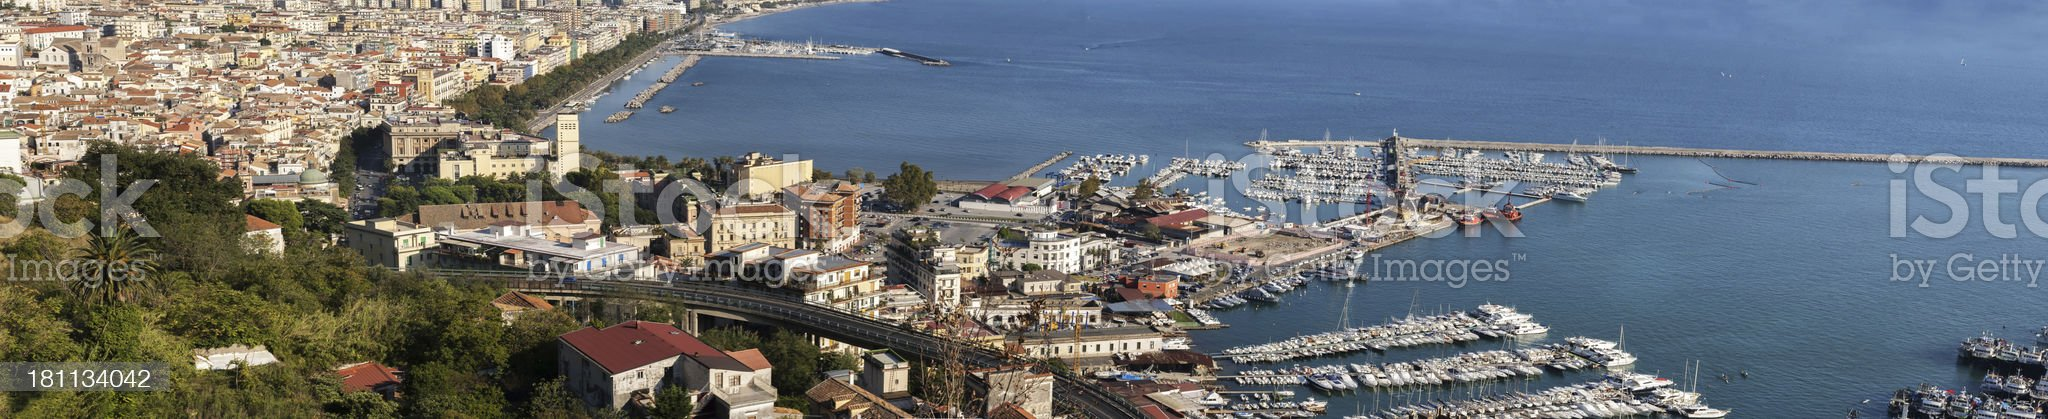 Panoramic view of the port in Salerno, Italy royalty-free stock photo